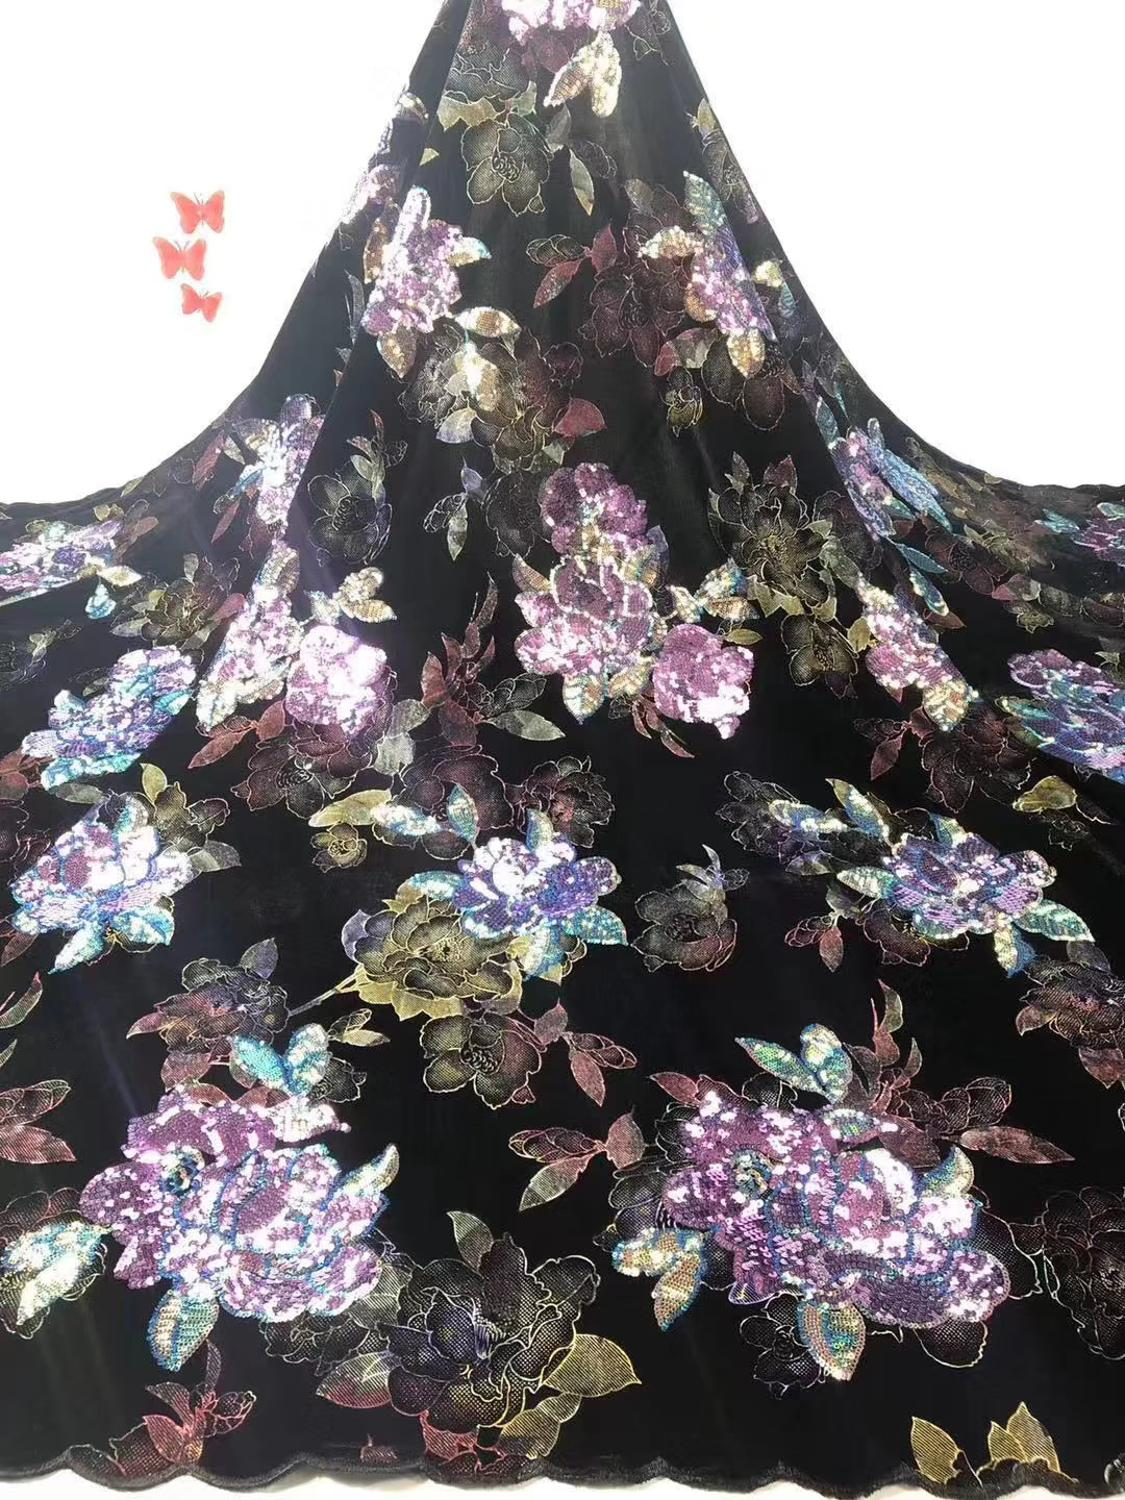 good quality nigerian sequins lace fabric 5yards mesh lace fabric in flowers pattern design  for wedding or party  JIAJIAAP171